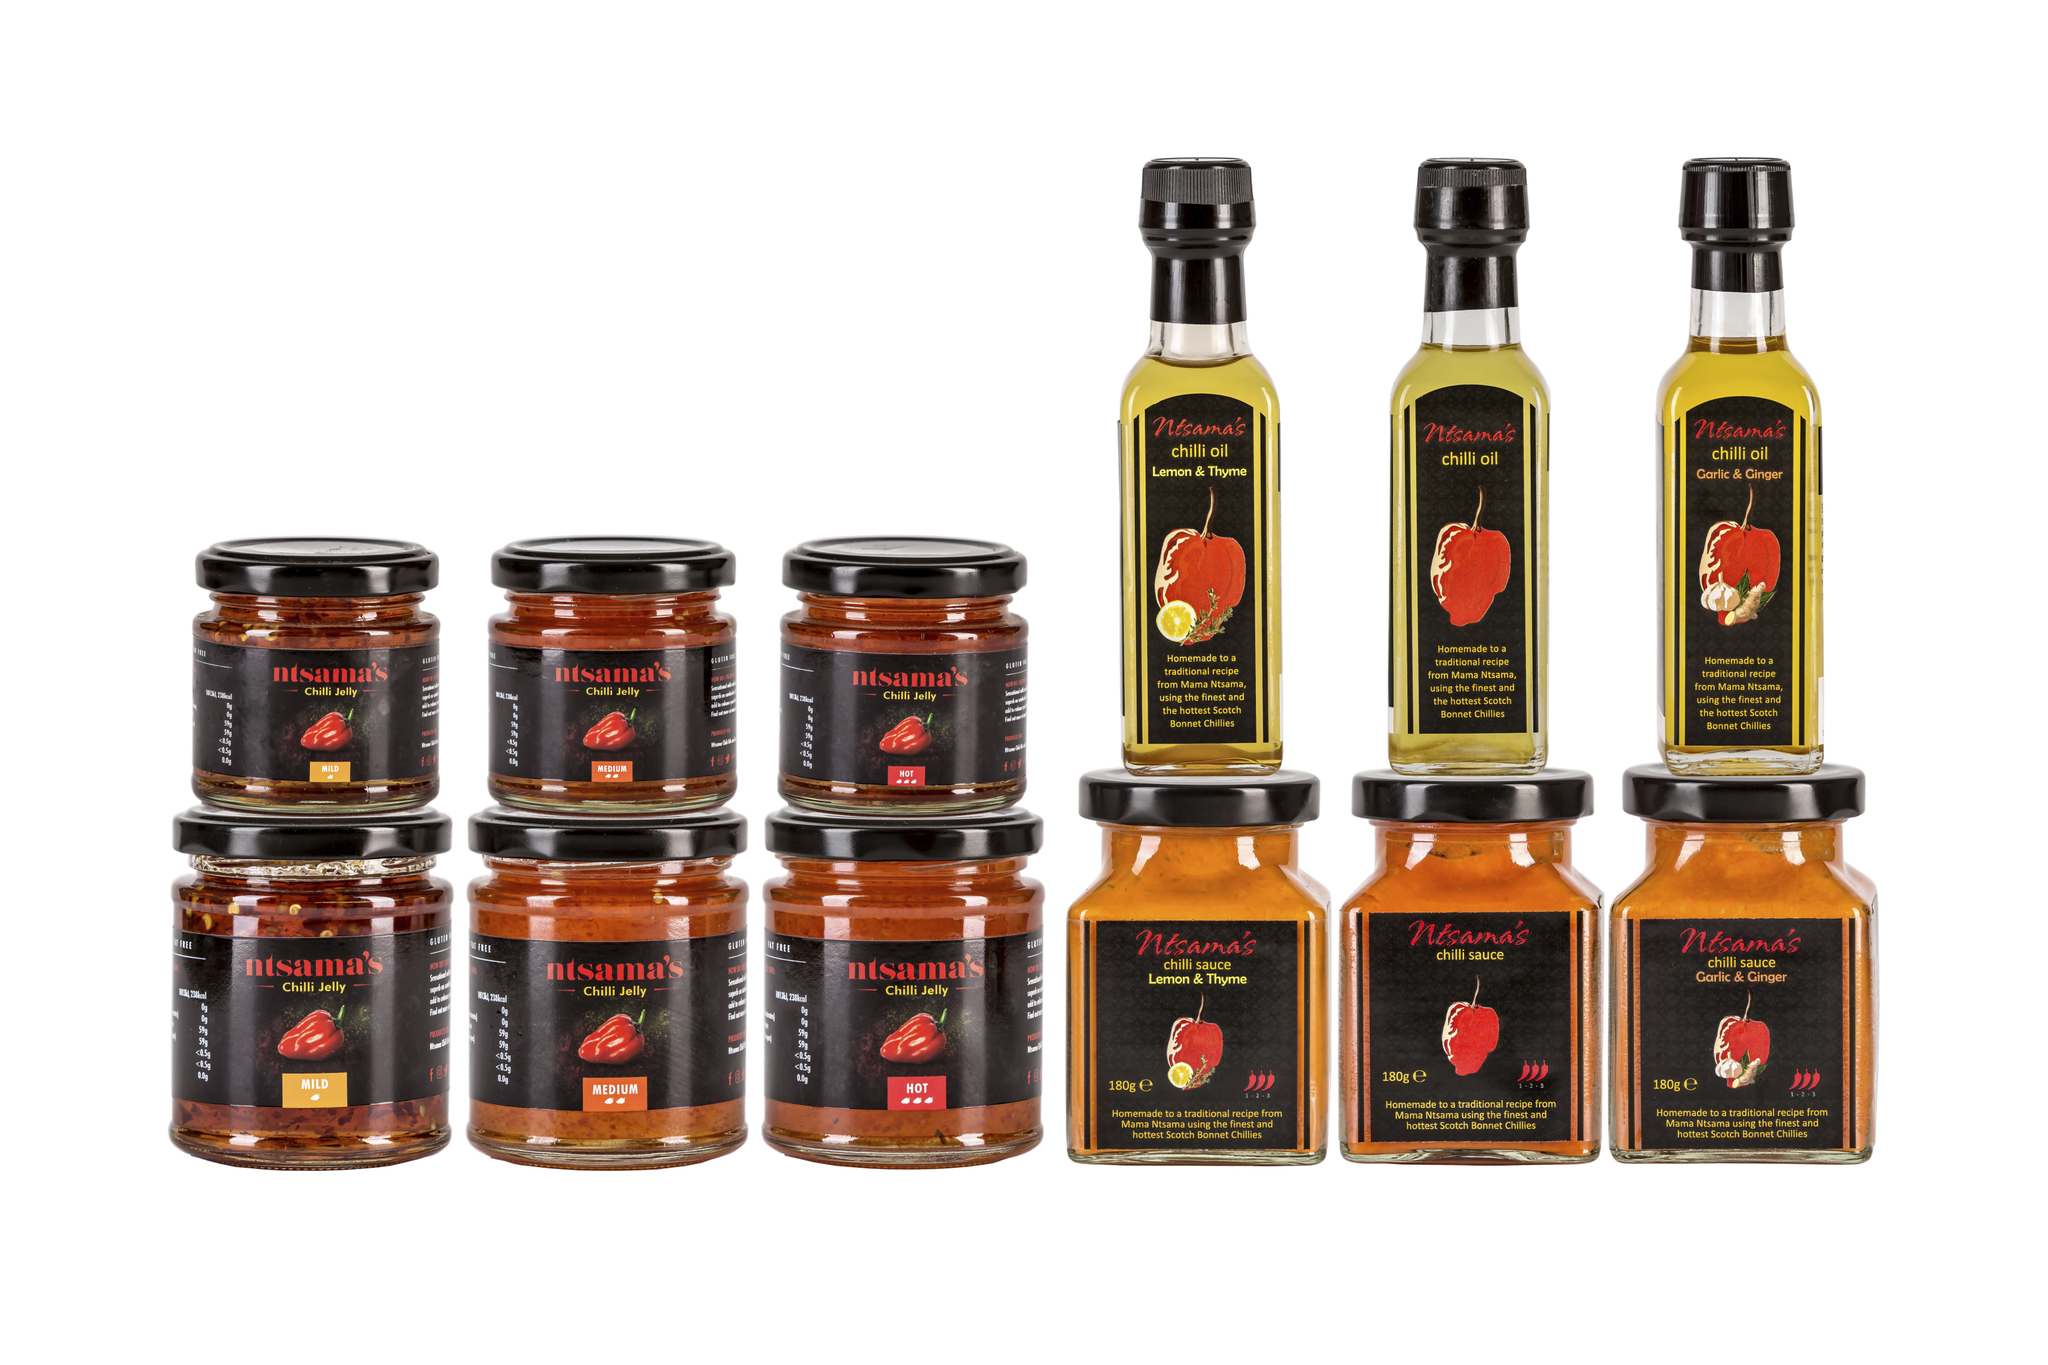 Ntsama Chilli Oil and Sauces